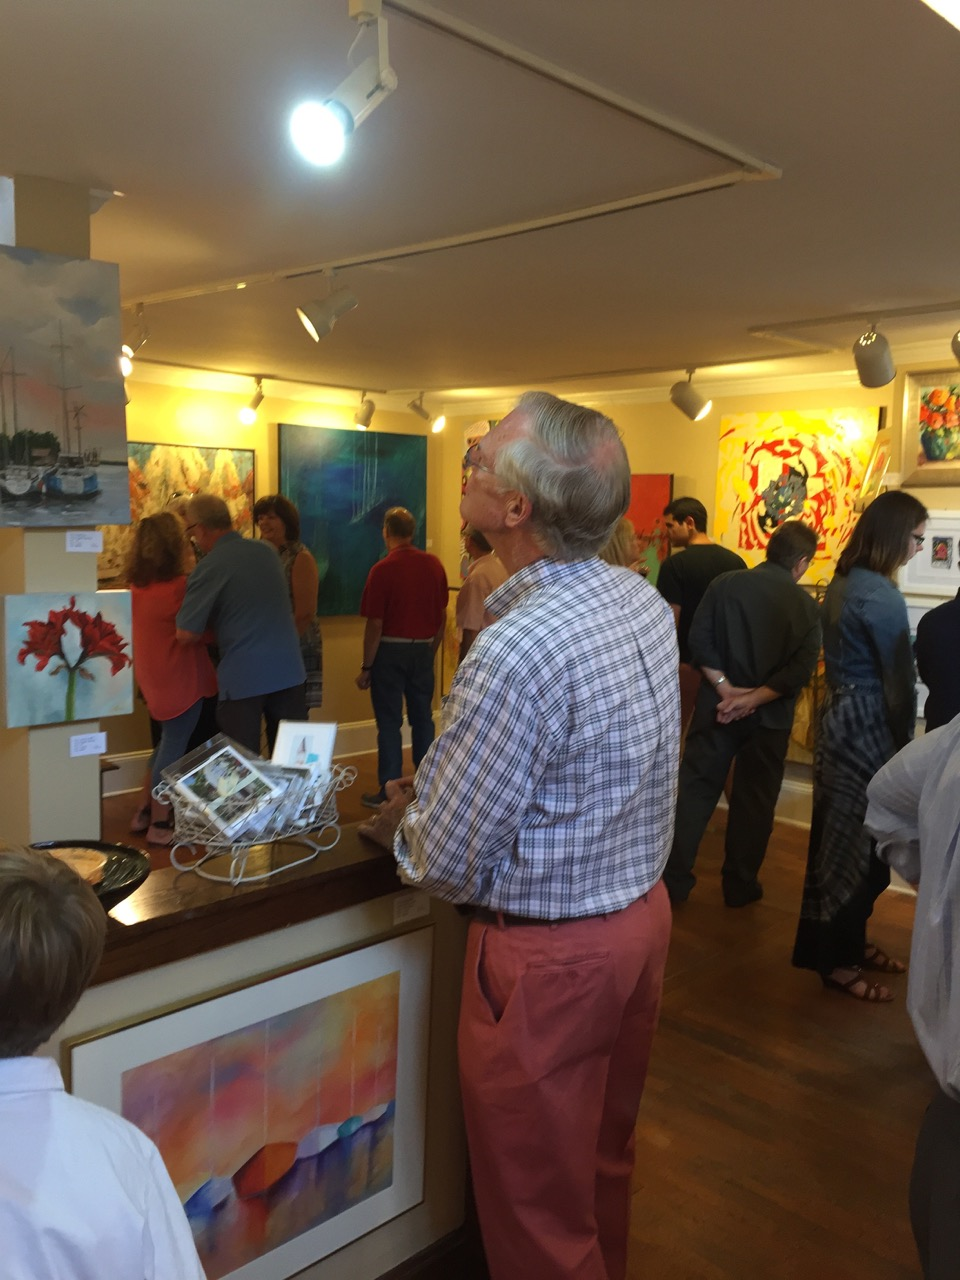 the-crowd-enjoys-the-art-on-display-at-tyler-white-july-24-2015-IMG_0944.jpeg